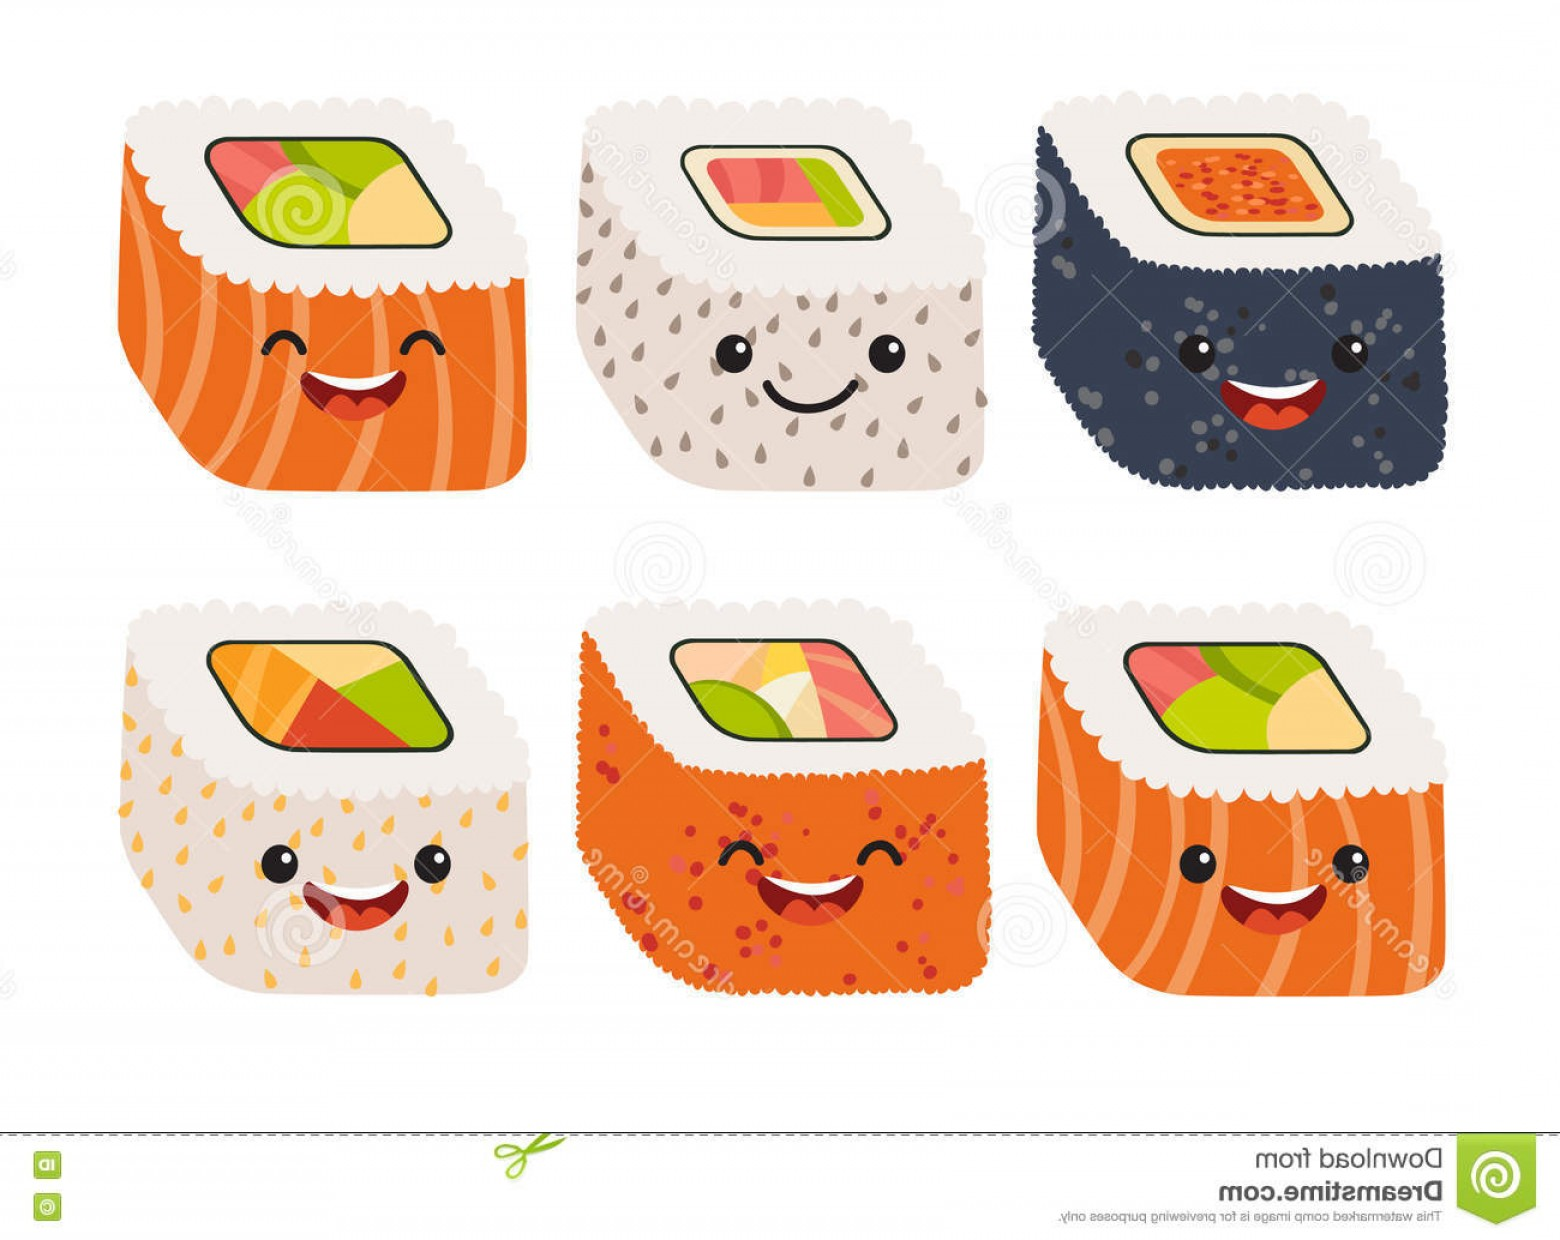 Sushi Vector Art: Stock Illustration Fun Sushi Vector Cute Sushi Cute Faces Sushi Roll Set Happy Sushi Characters Funny Japanese Food Image